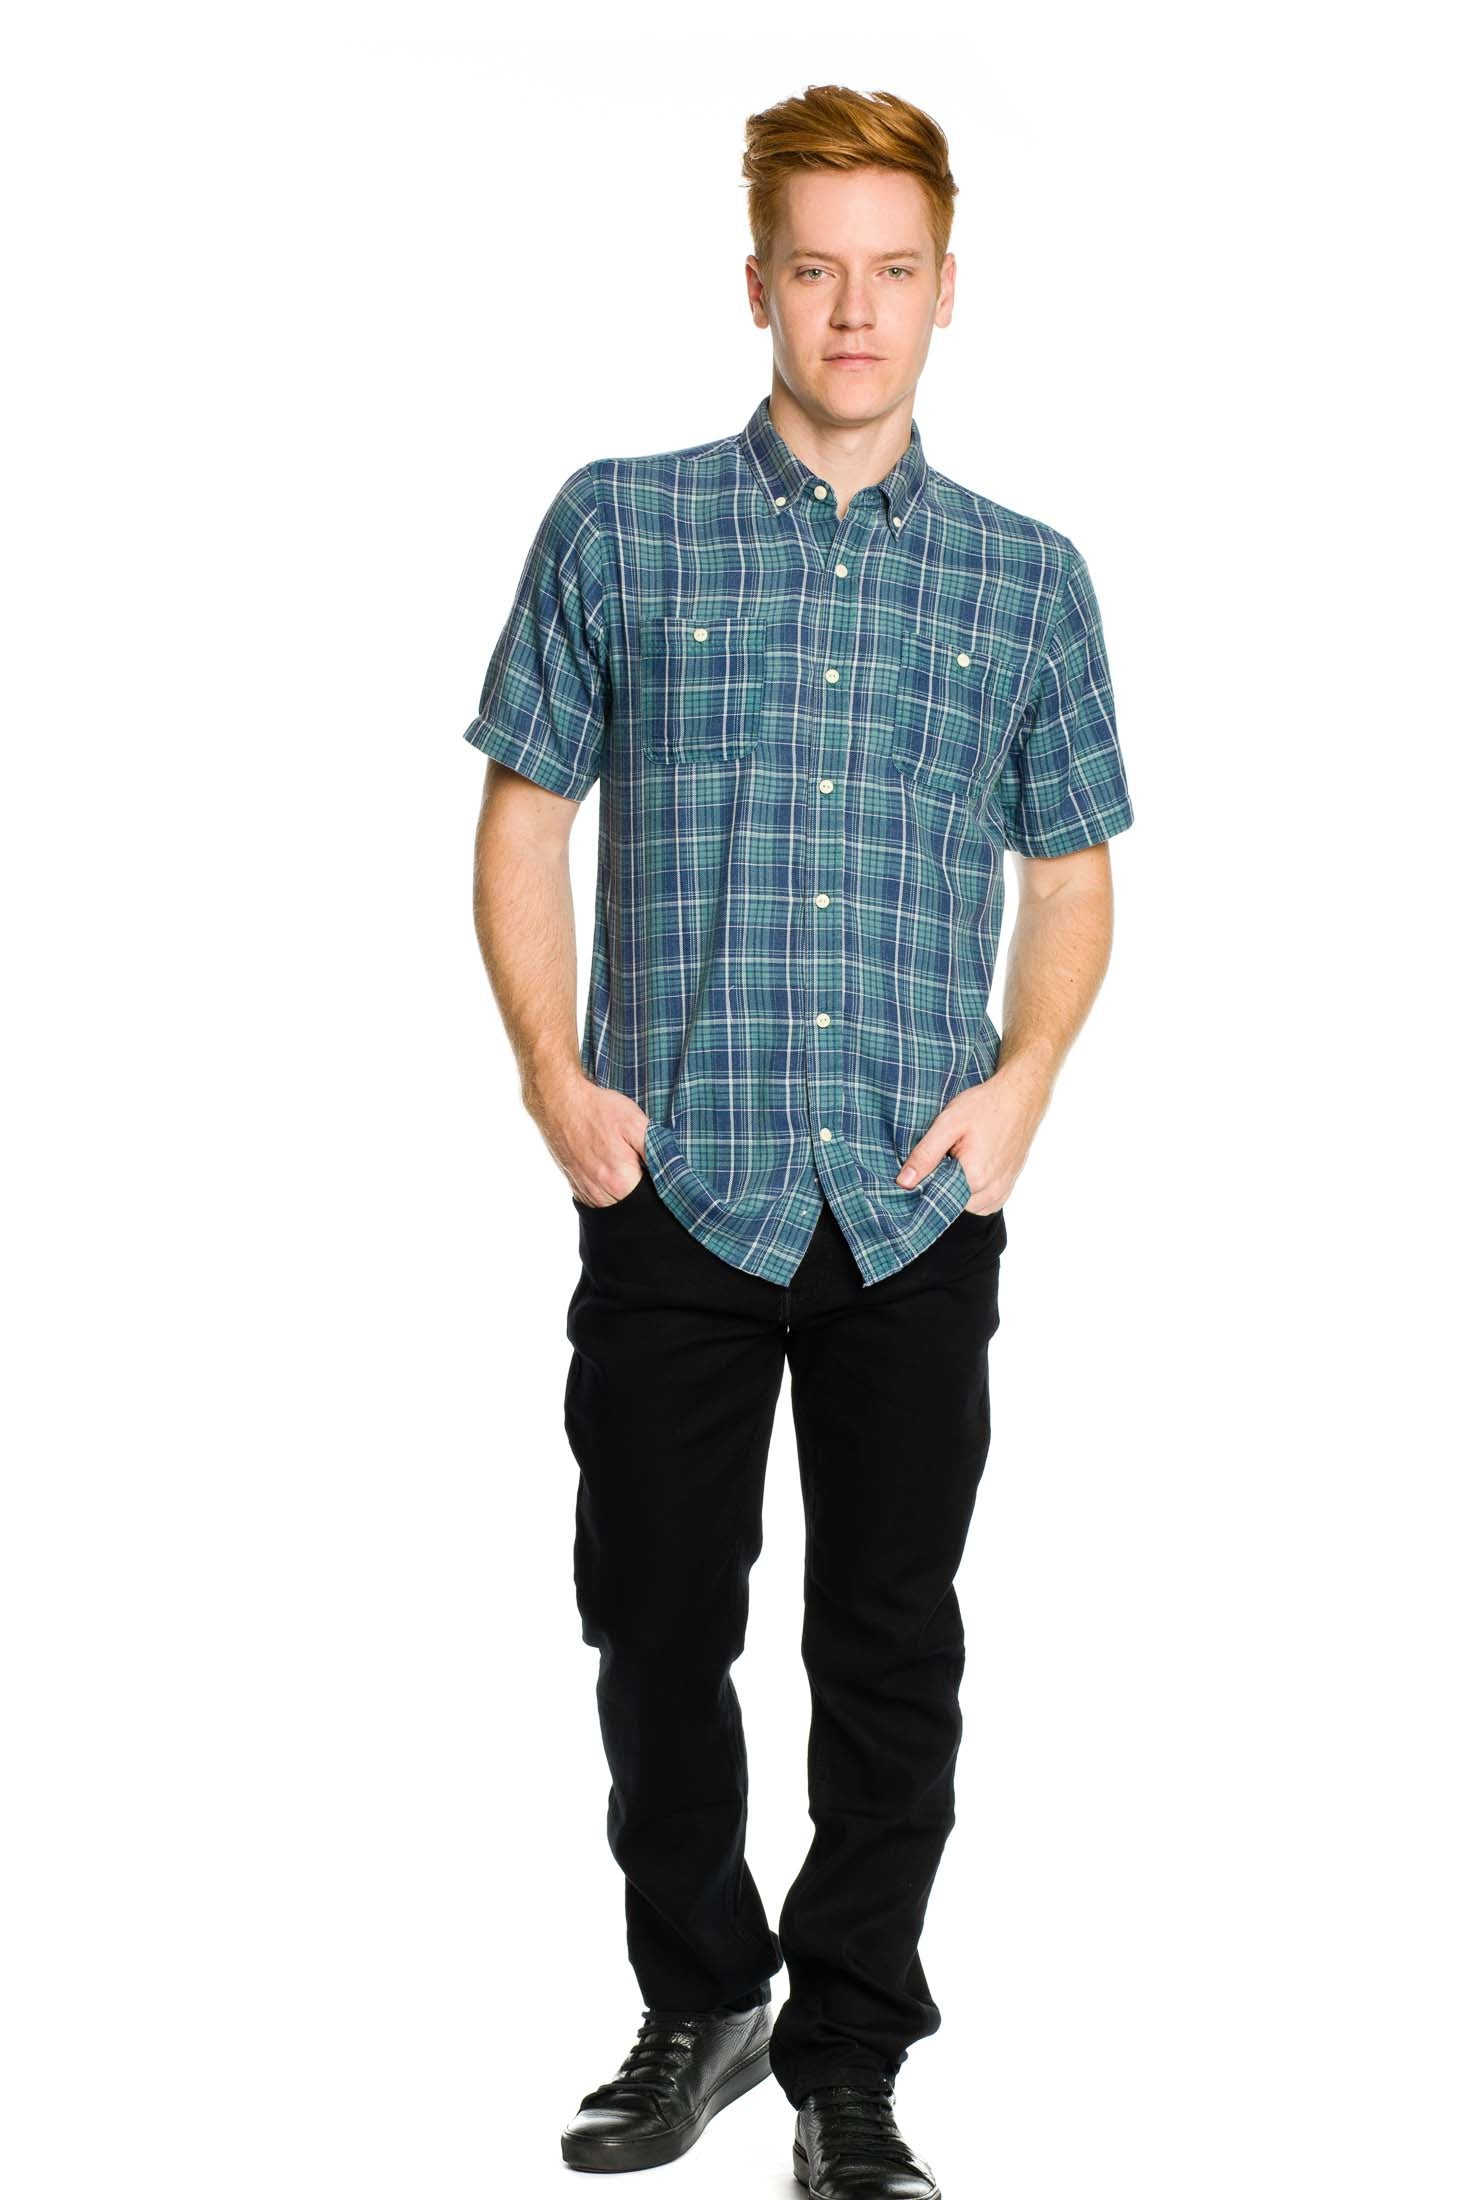 Greenwich Short Sleeve Shirt - Dusty Jade - Ezekiel Clothing